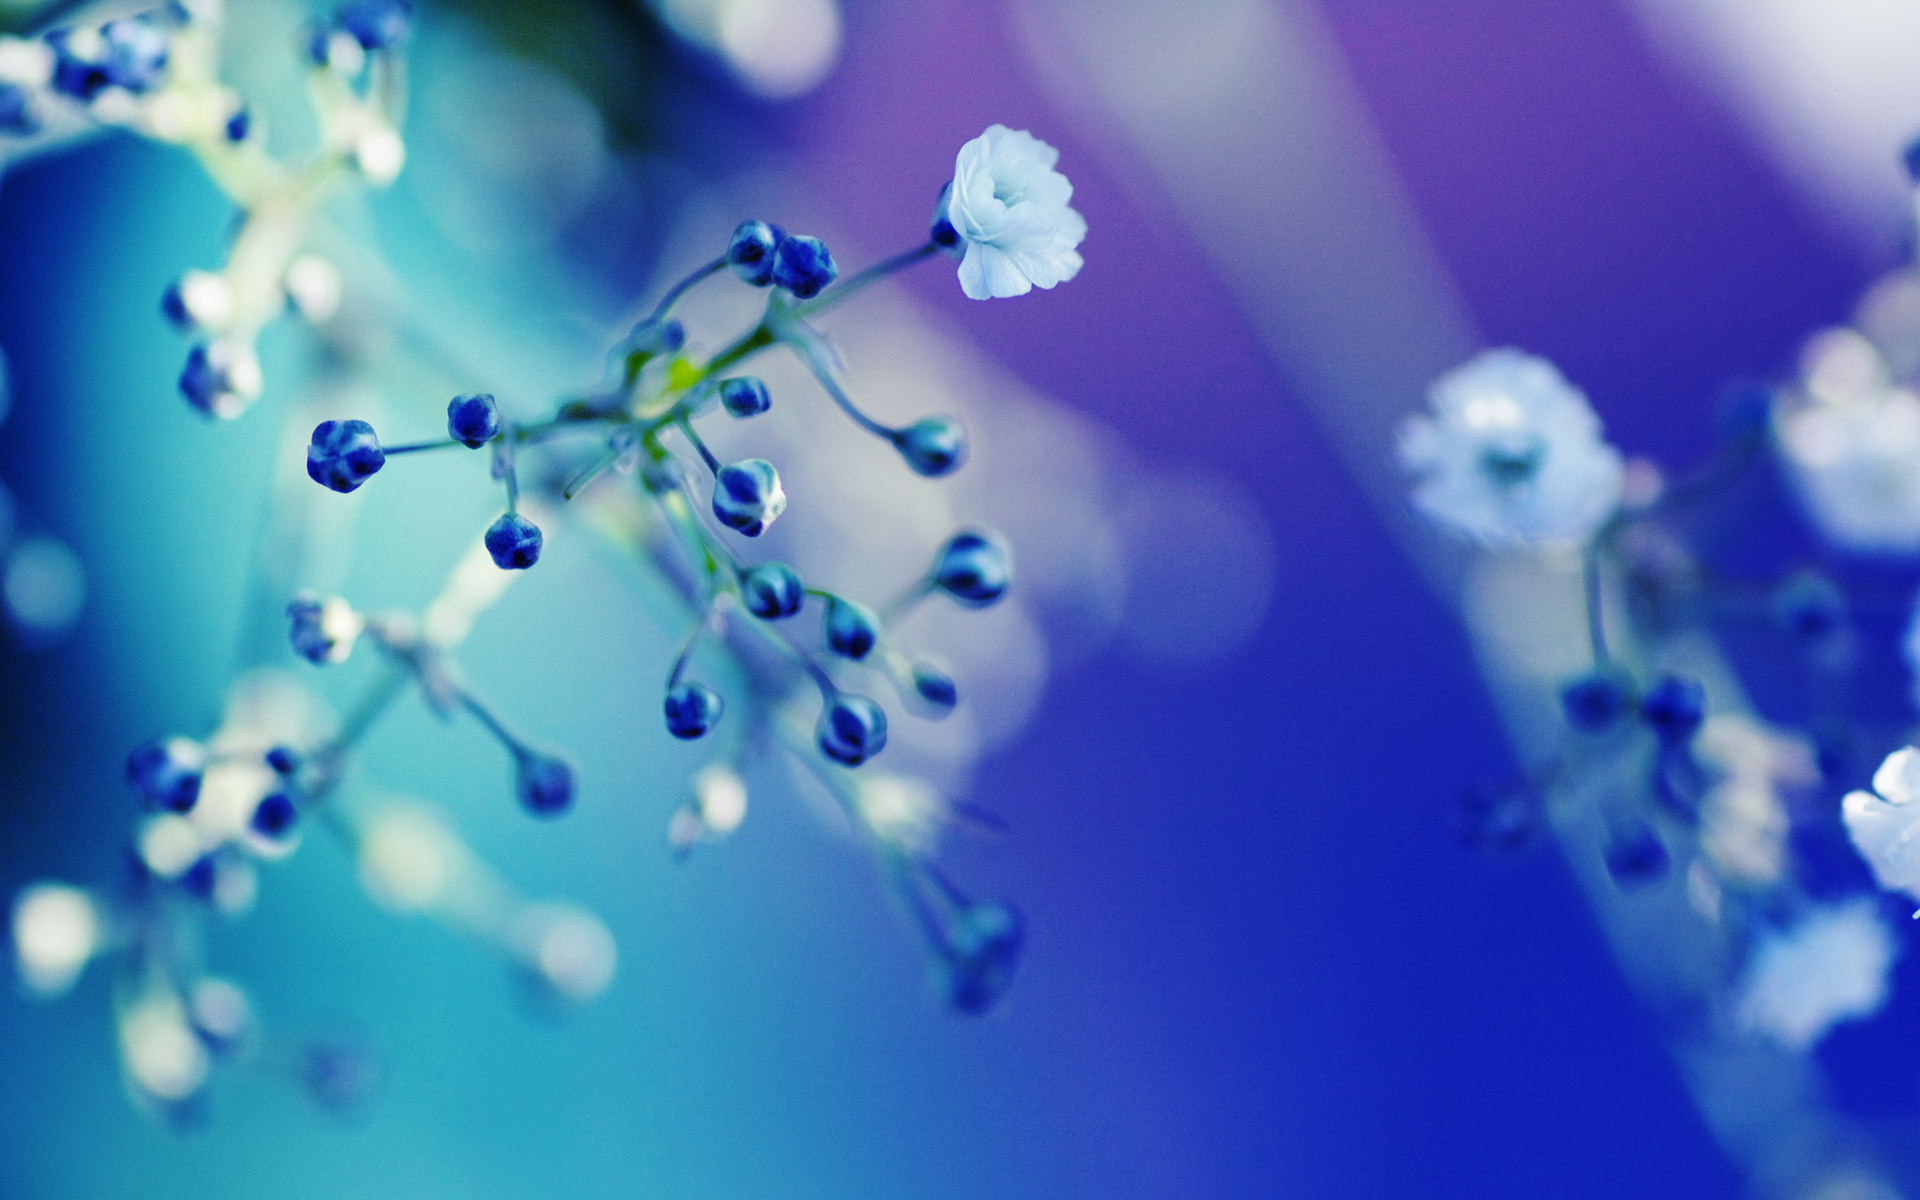 flower full hd wallpaper and background image | 1920x1200 | id:78376